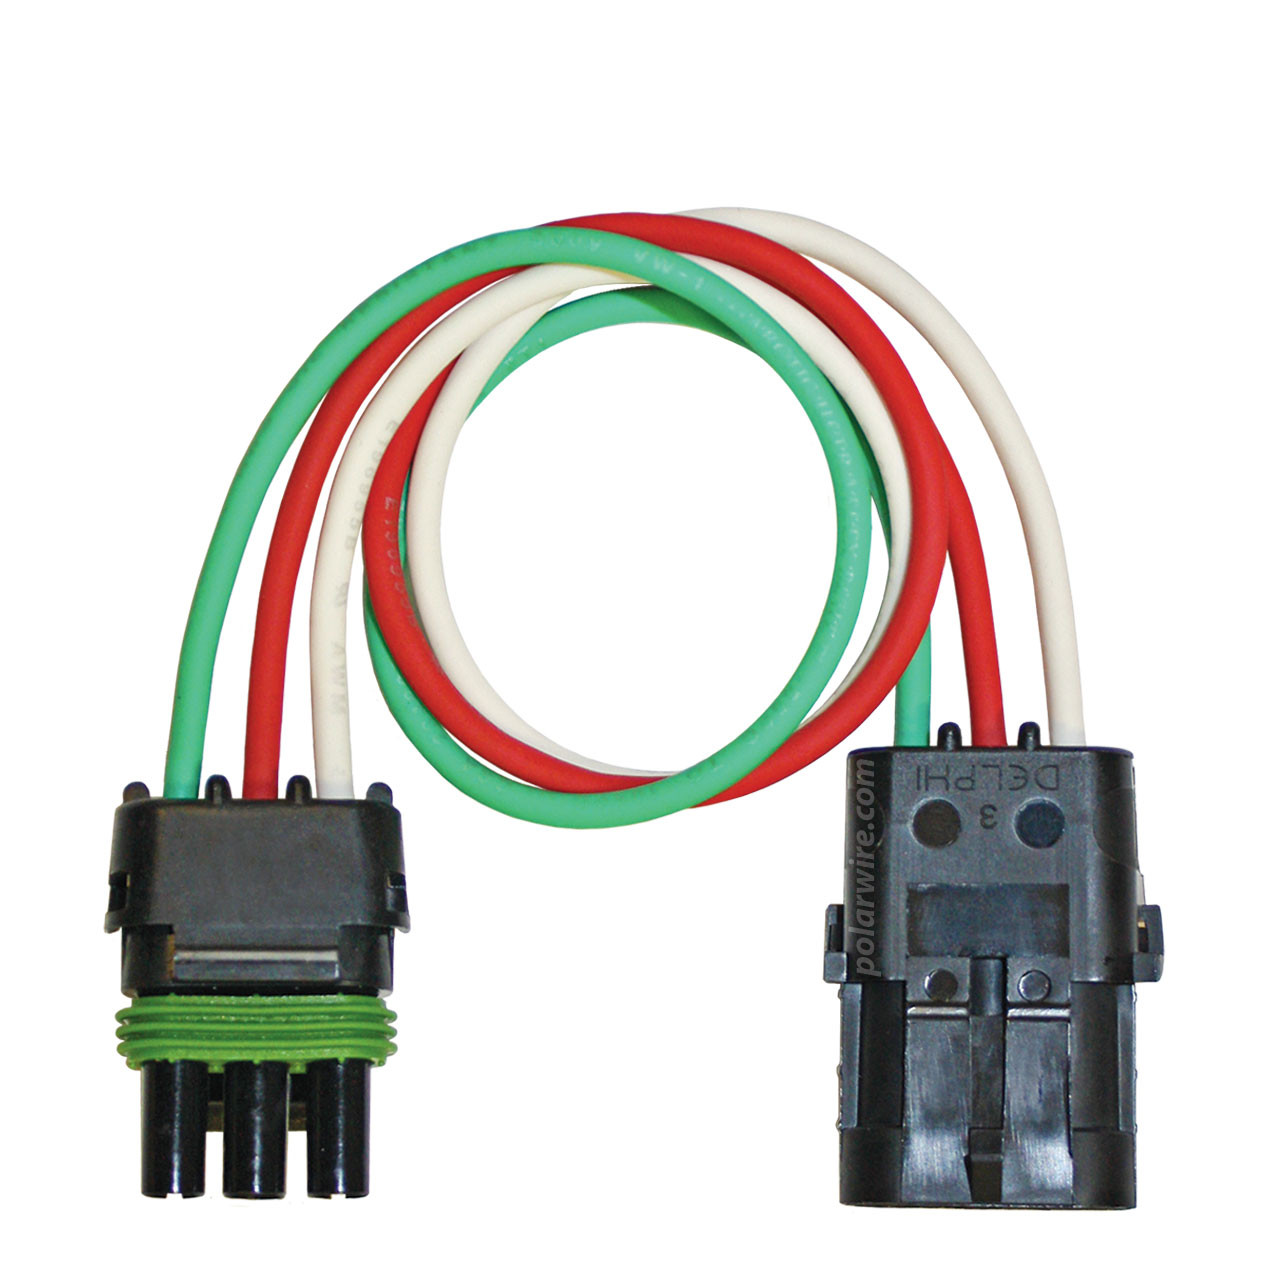 12 inch 3 pole Weather Pack Pigtail wired with 12 AWG Arctic Ultraflex Blue wire in red, white and green